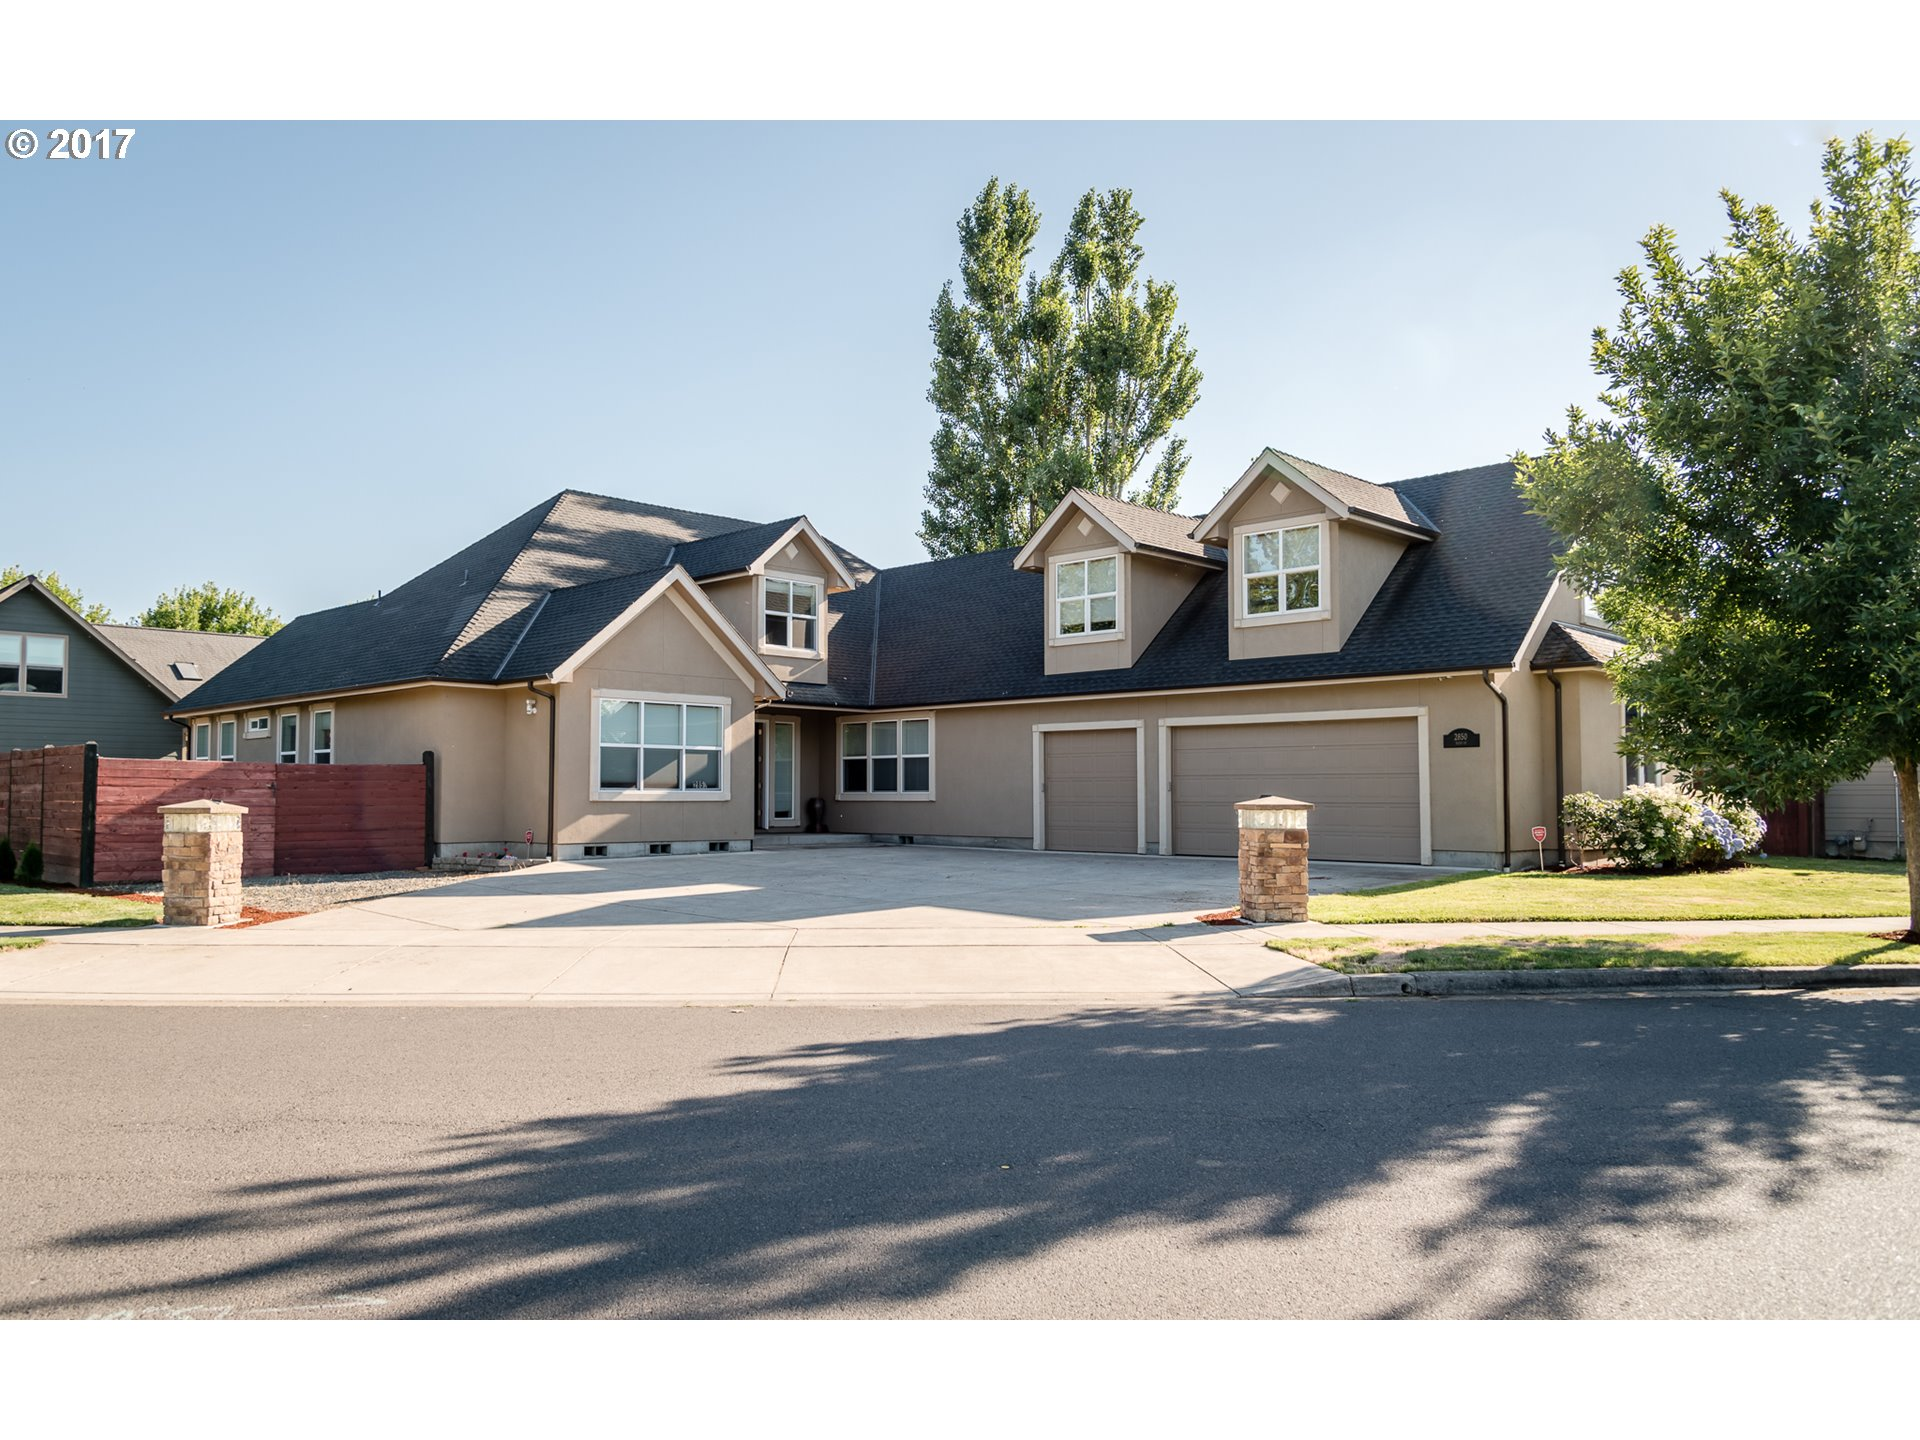 2850 TAITO ST, Eugene, OR 97404